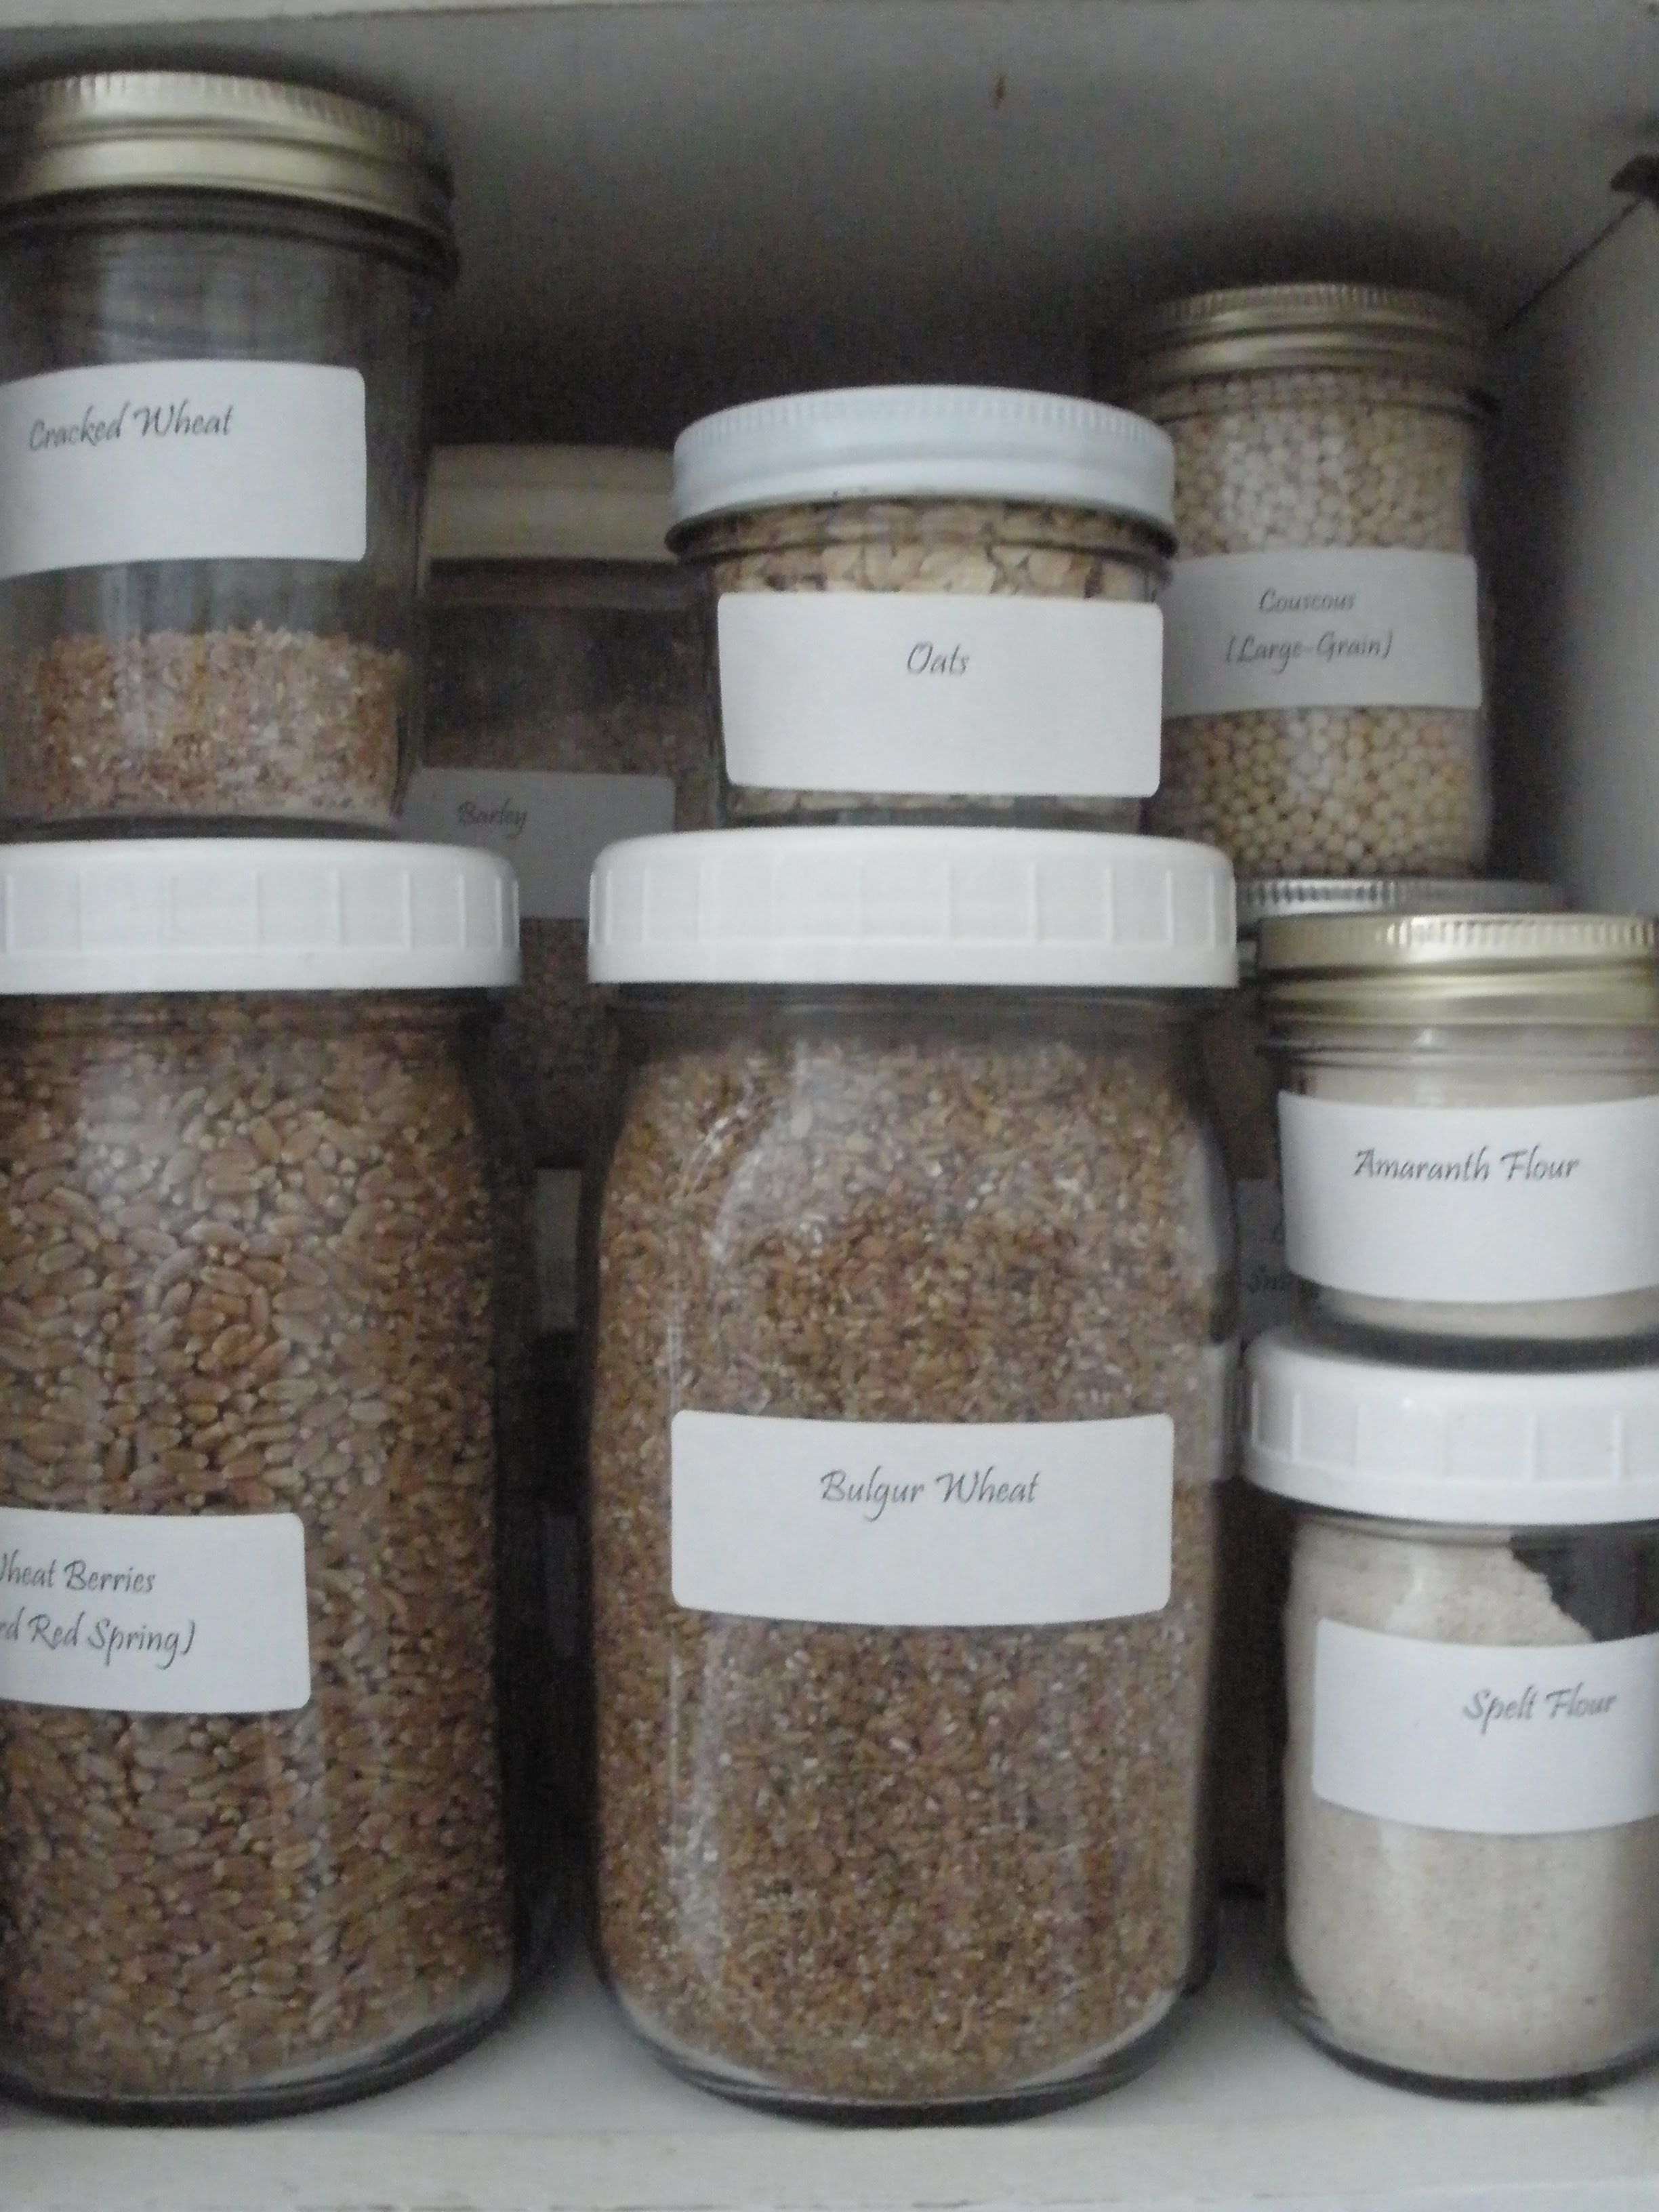 Wheat Berries and Flours